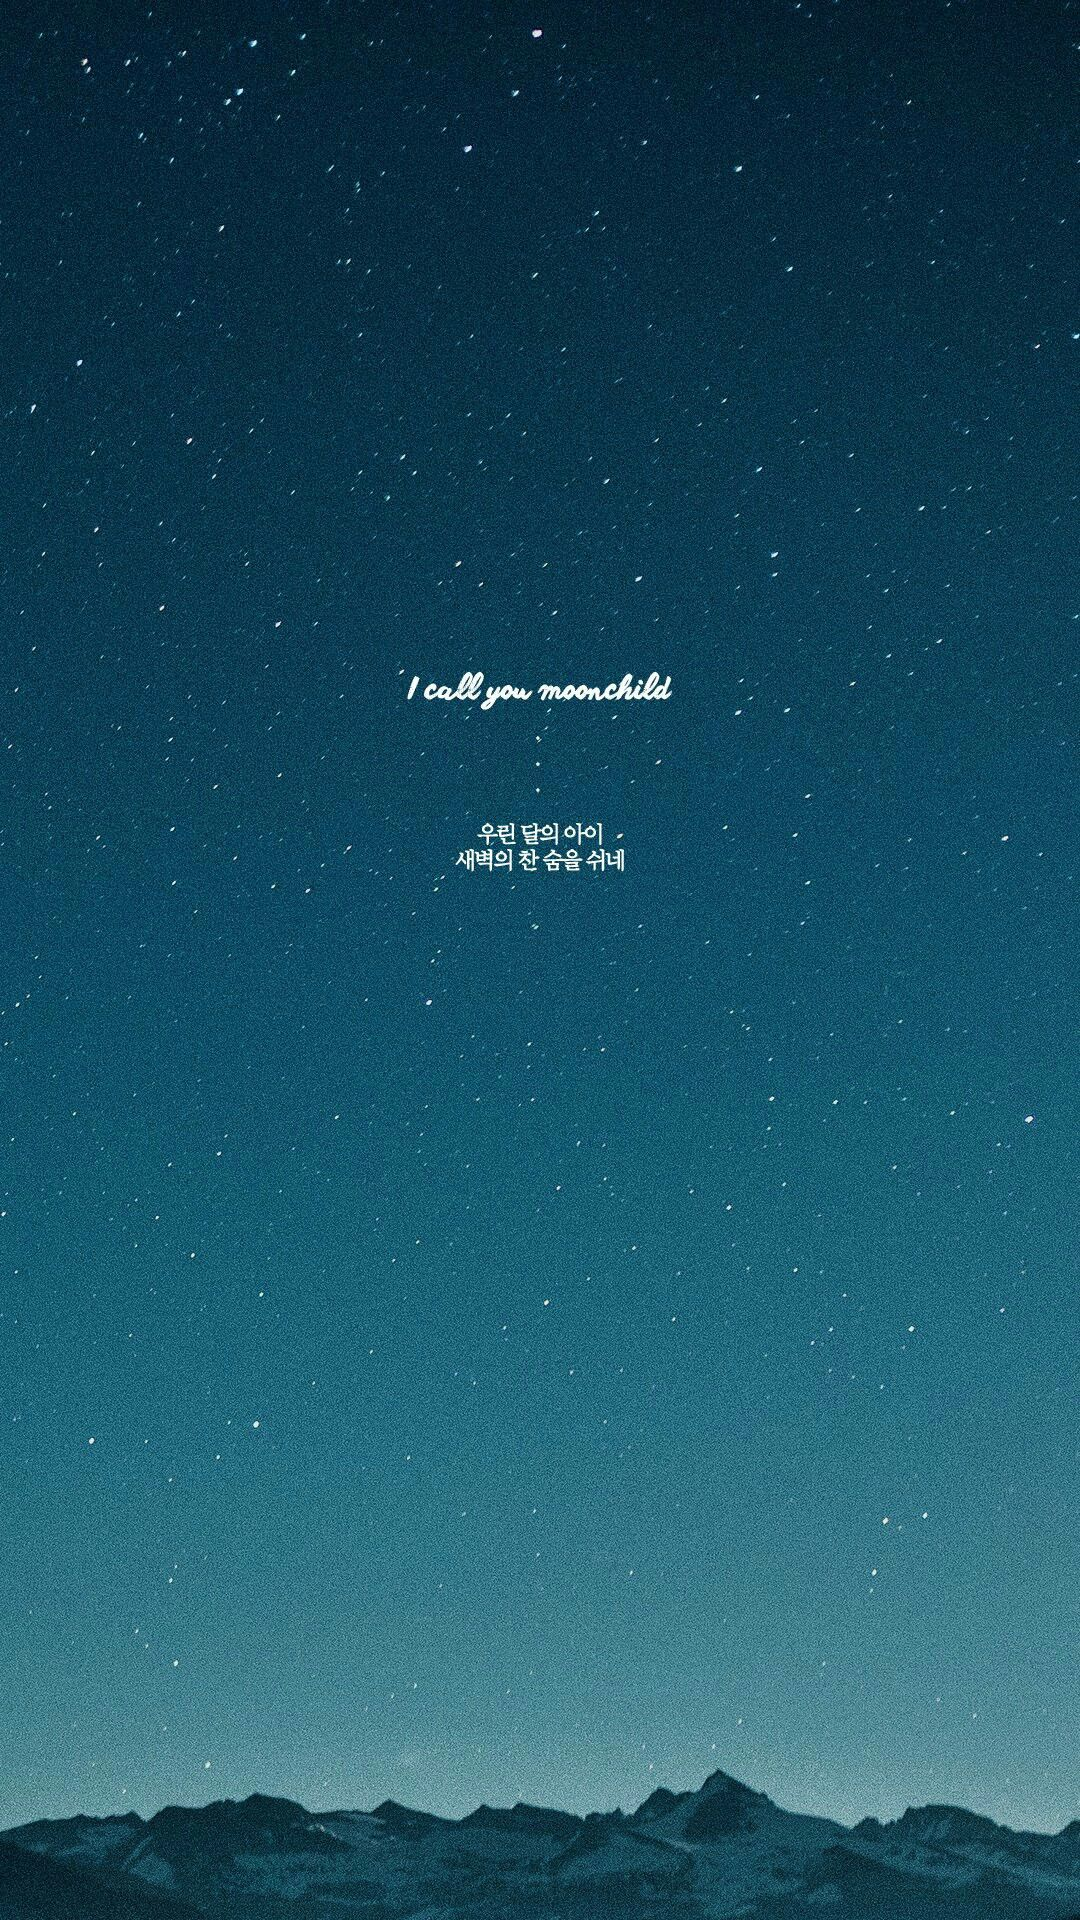 Pin By Dzesika C On Quotes Bts Bts Wallpaper Bts Lyric Iphone Wallpaper